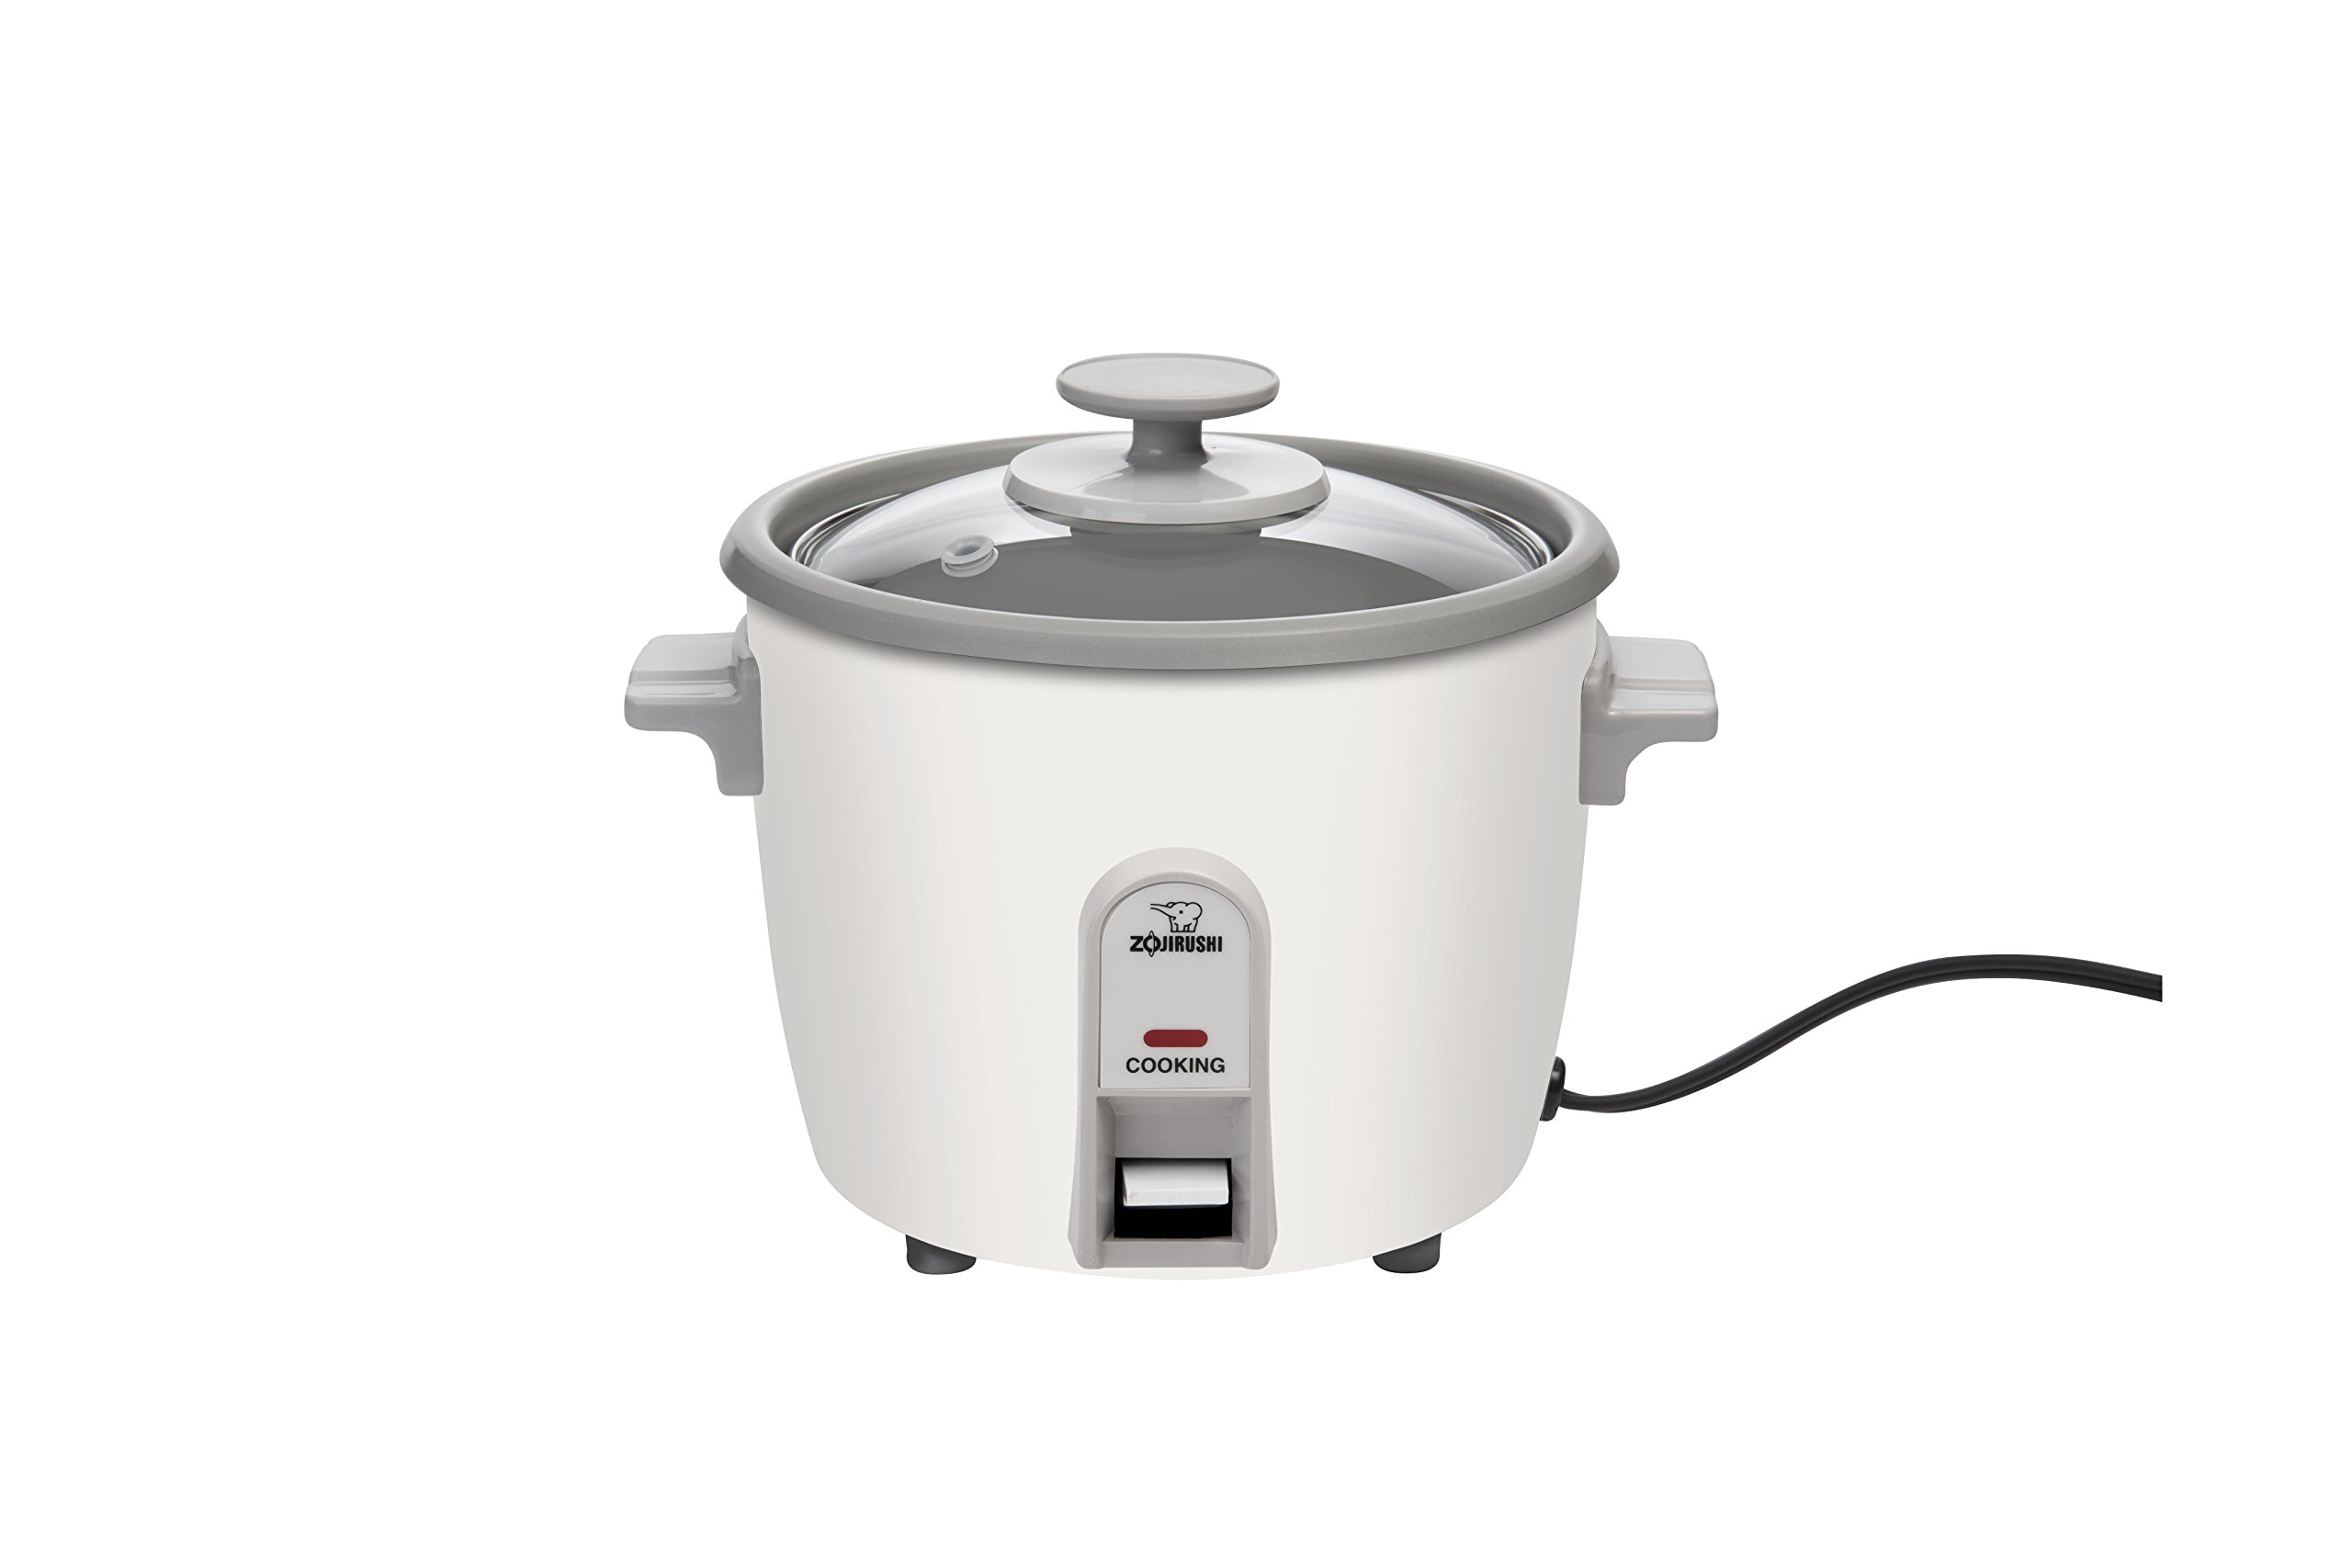 Zojirushi NHS 06 3 Cup Uncooked Cooker